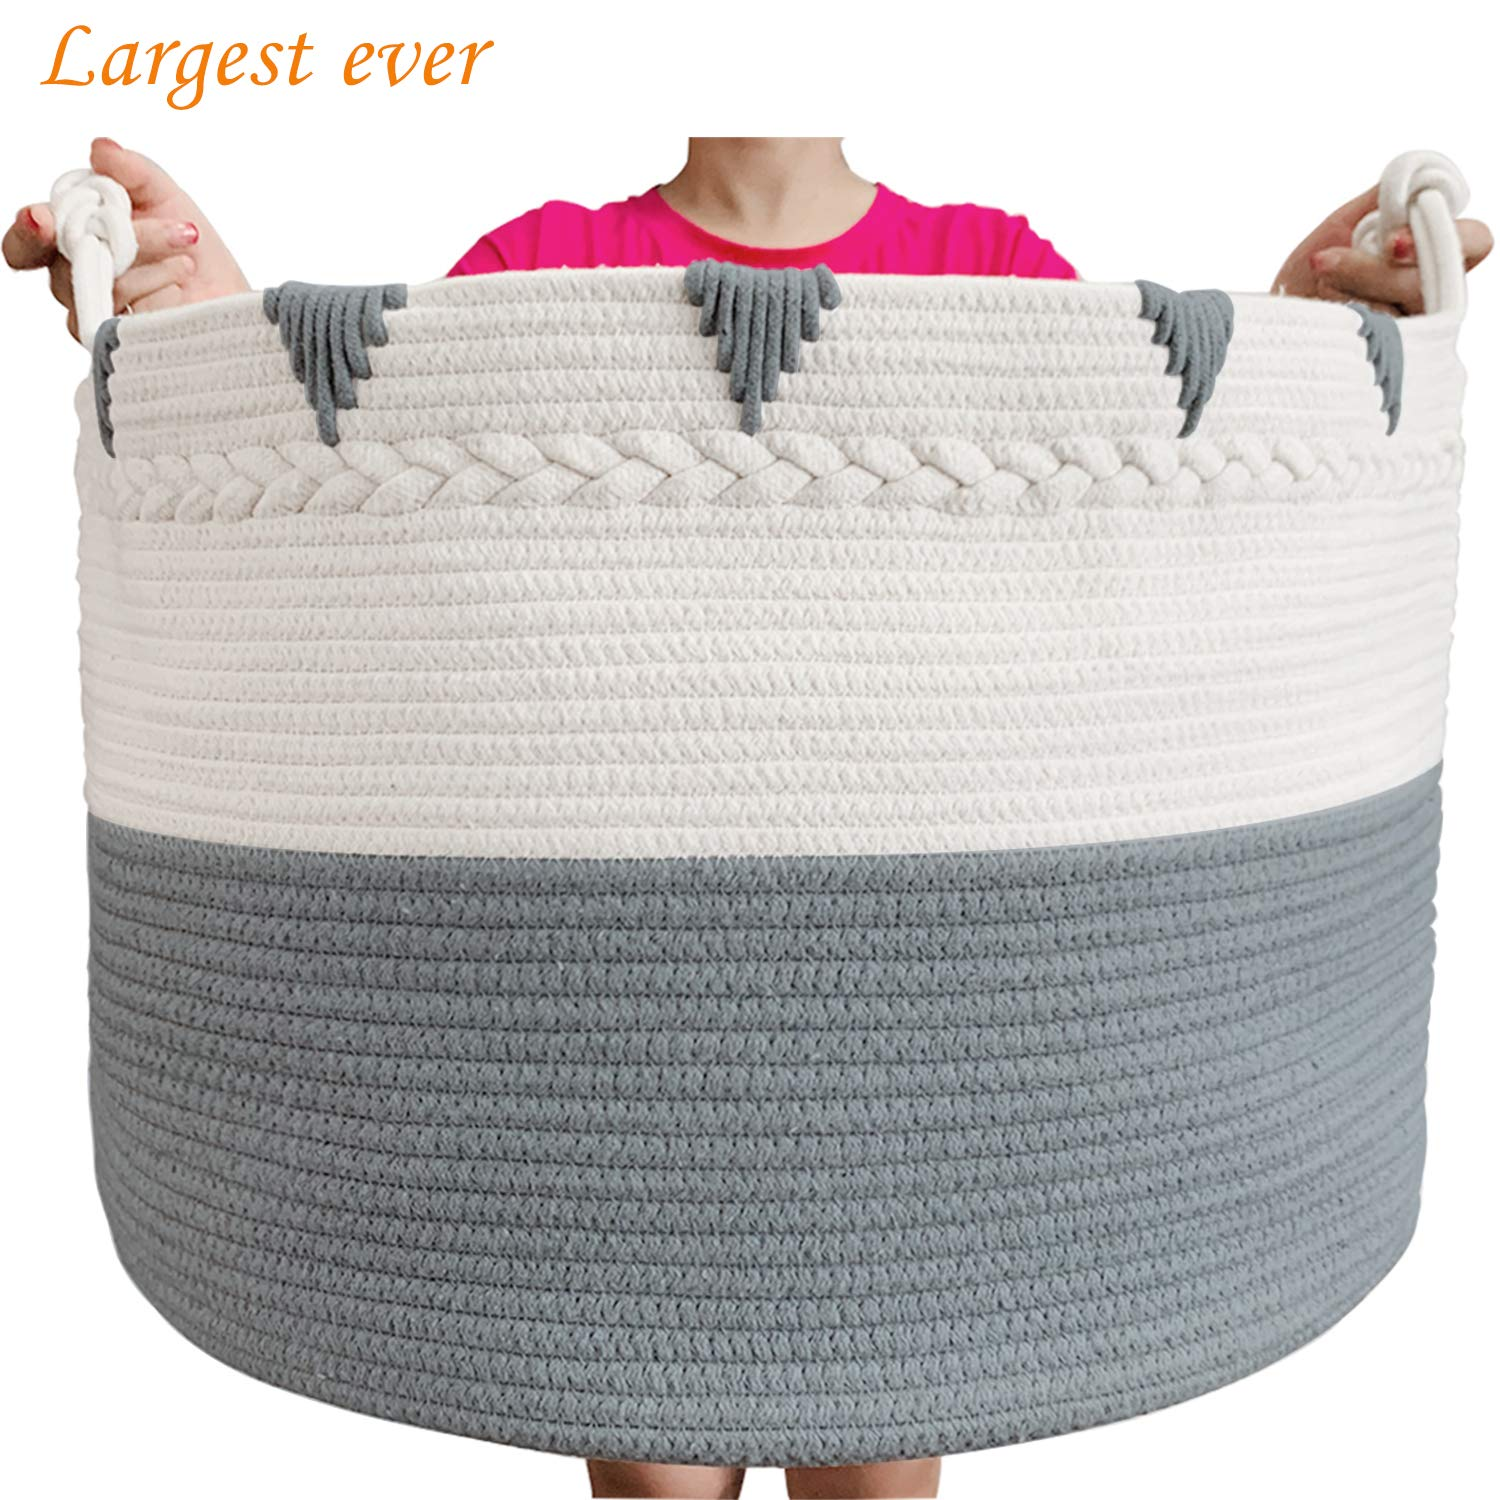 TerriTrophy XXXXLarge Blanket Basket 22in x 22in x 16in Woven Baskets for Blankets Throws Toy Basket Laundry Baskets Storage Basket for Towel Diaper Laundry Basket